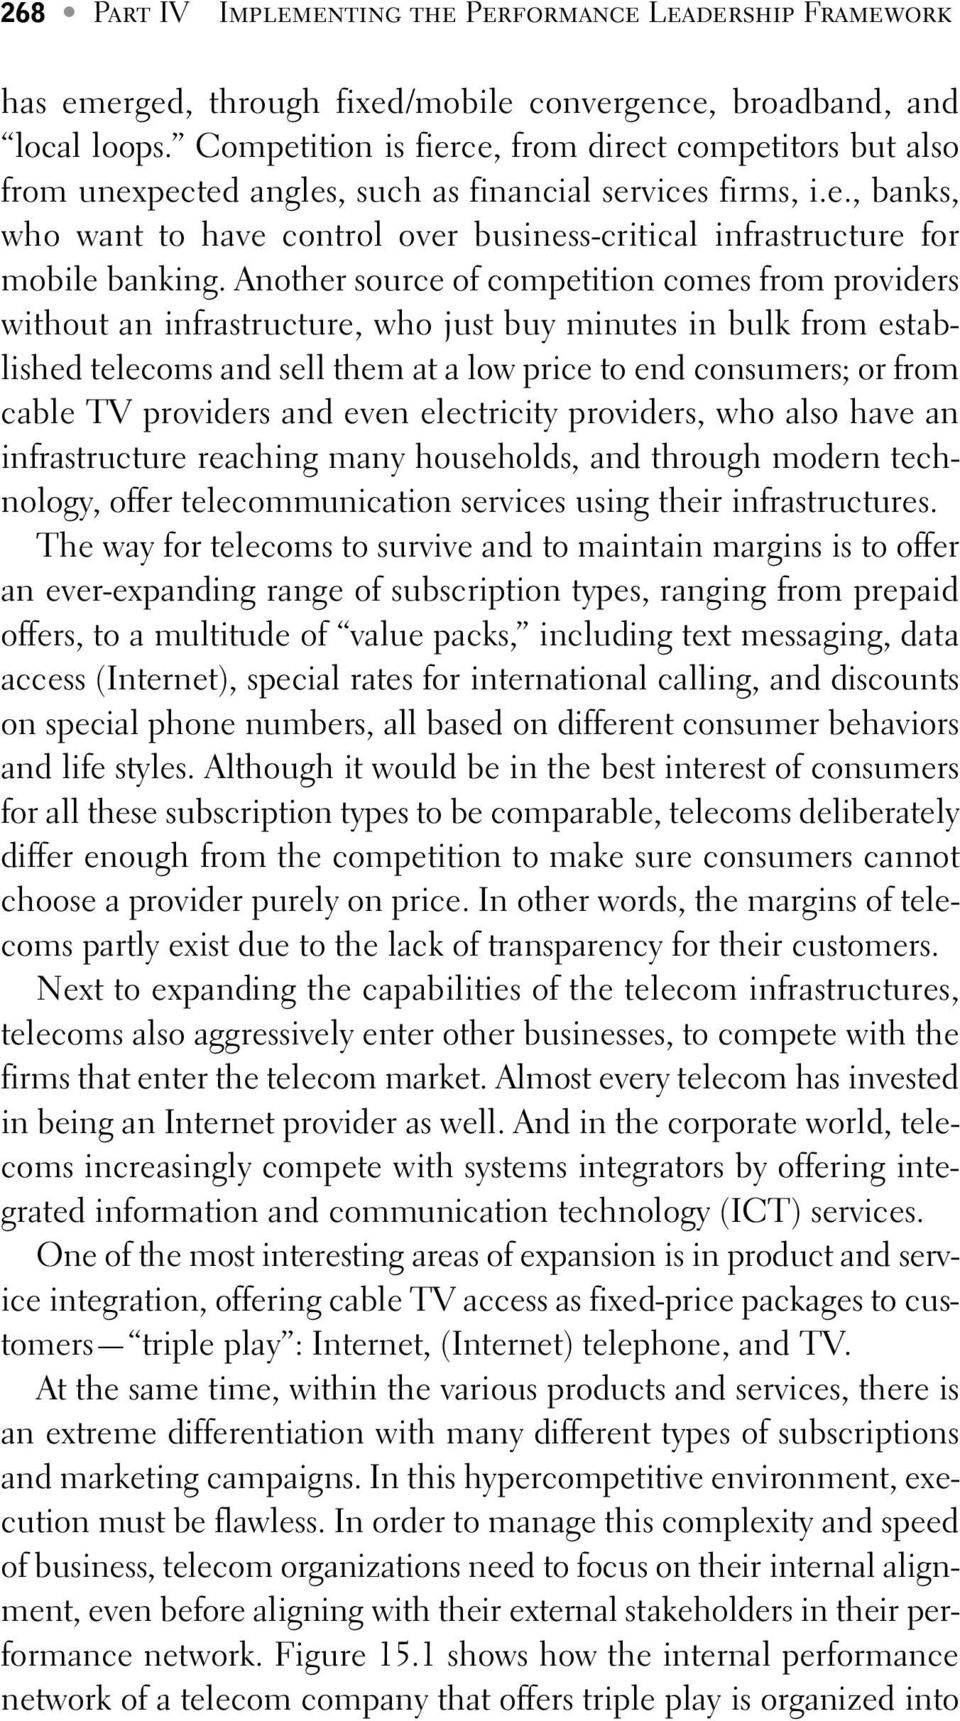 Another source of competition comes from providers without an infrastructure, who just buy minutes in bulk from established telecoms and sell them at a low price to end consumers; or from cable TV